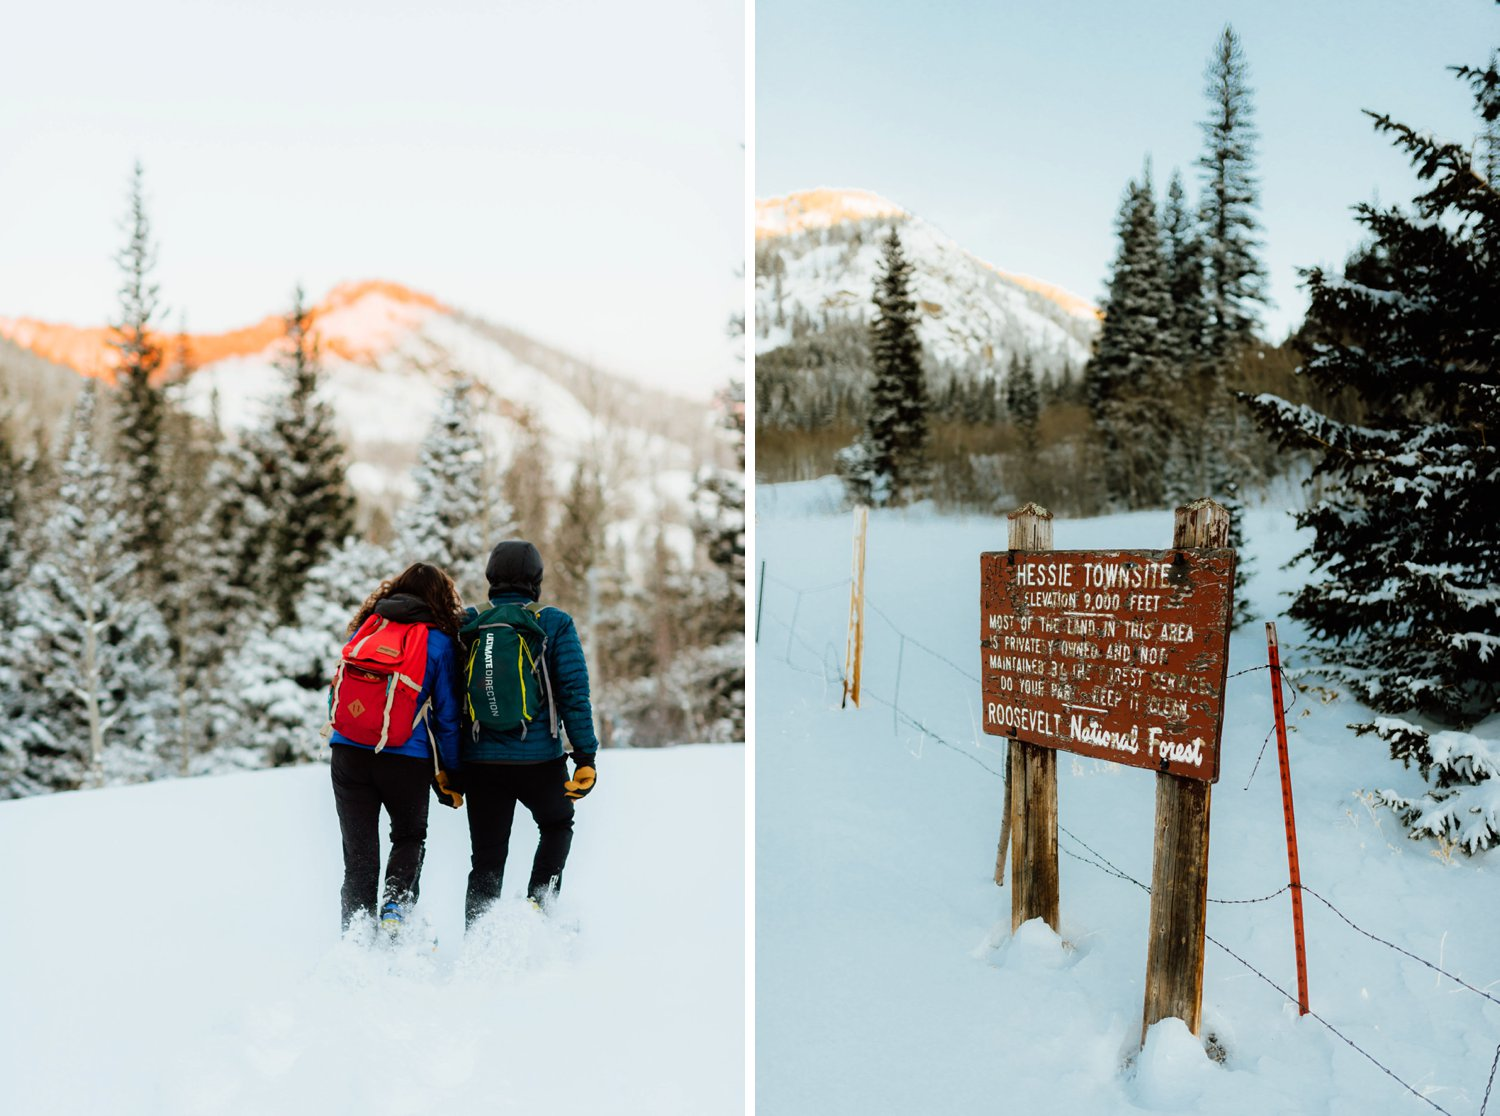 Hessie Trailhead in Indian Peaks Wilderness area is such a beautiful mountain trail. I love the idea of having an engagement session here!| Colorado engagement photos by adventurous, mountain wedding photographer, Maddie Mae.